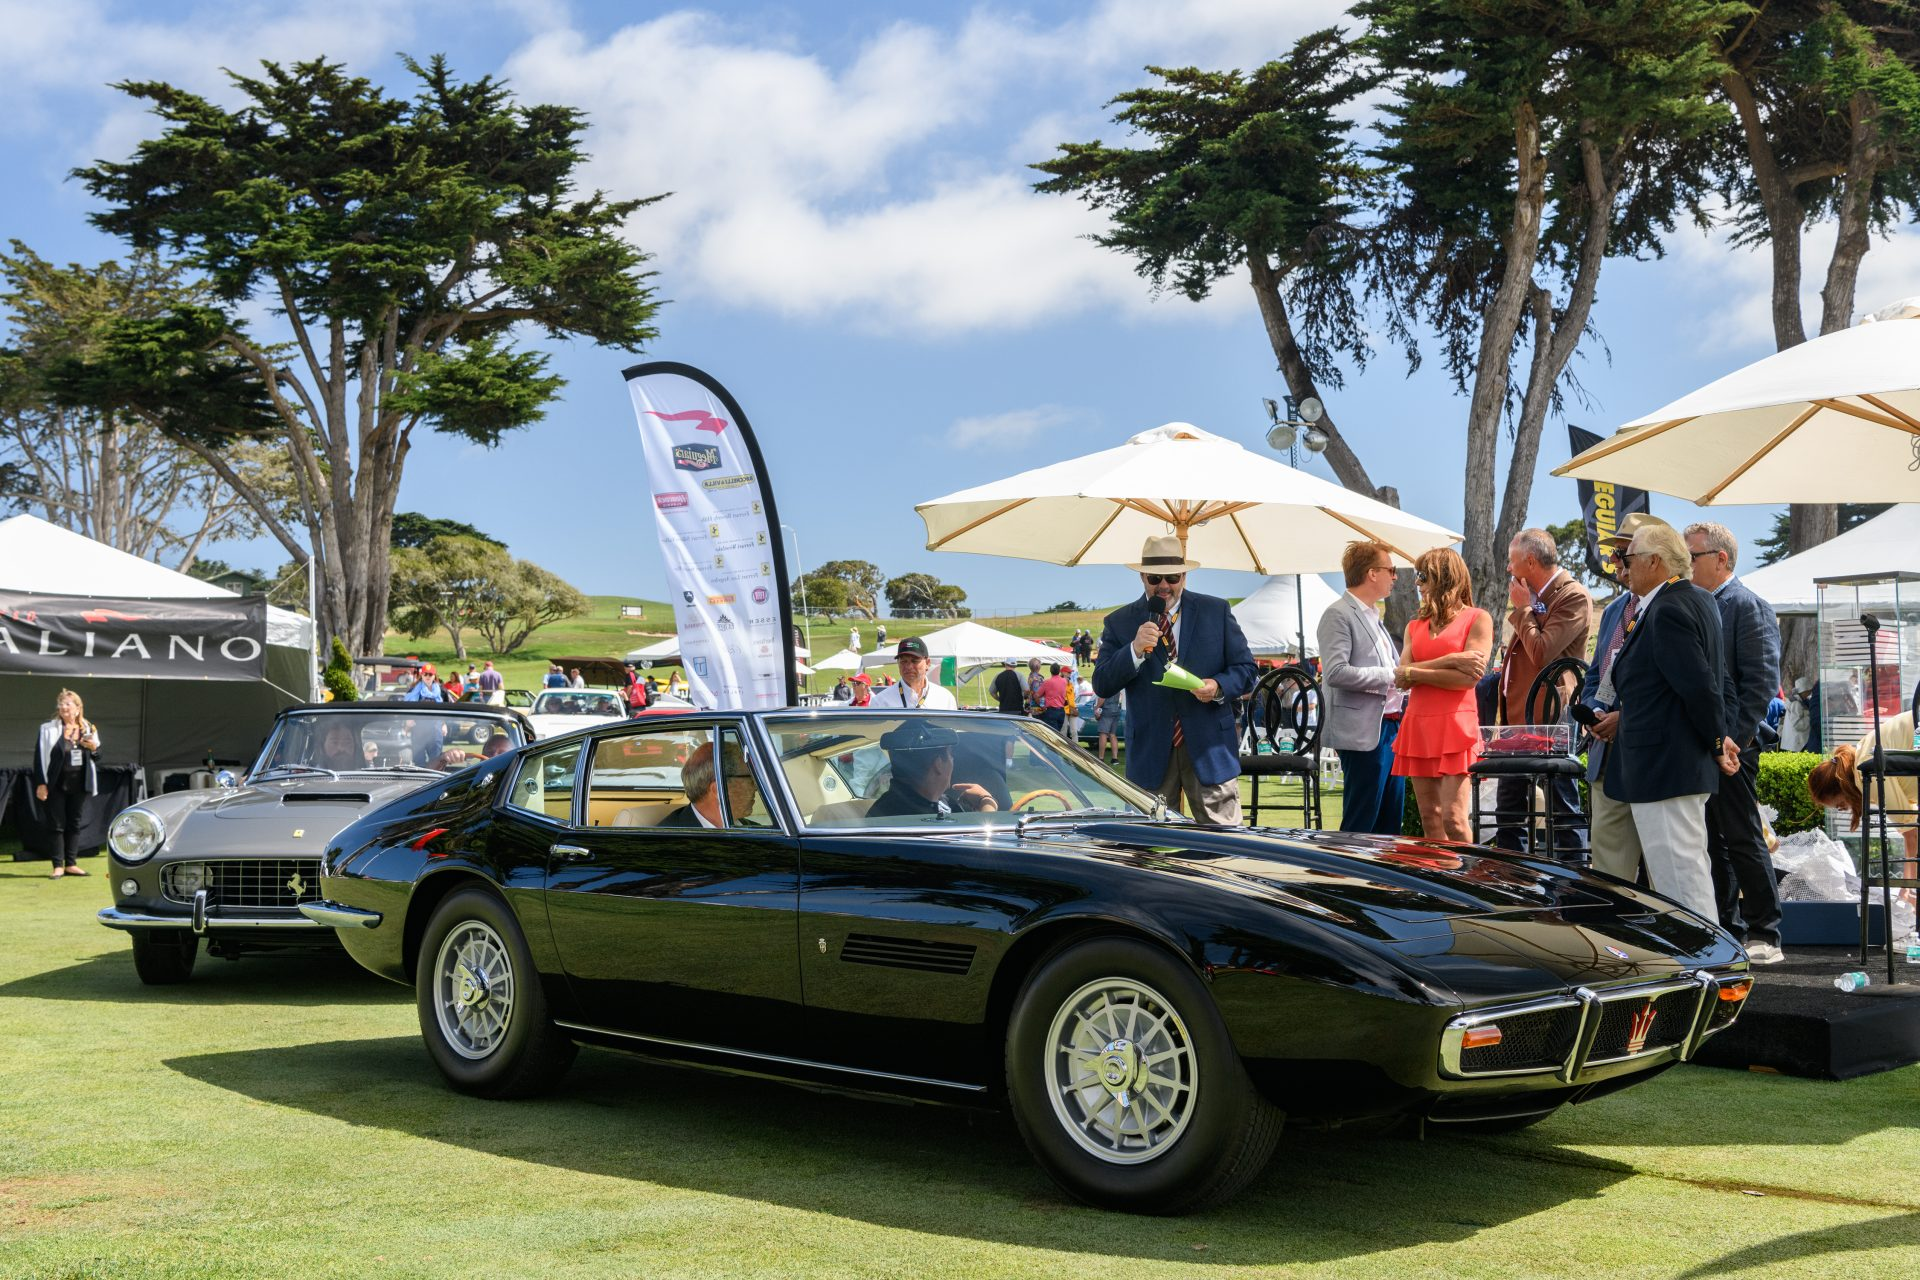 1st place Maserati: 1967 Maserati Ghibli Coupe owned by Ron Corradini from Newport Beach, CA